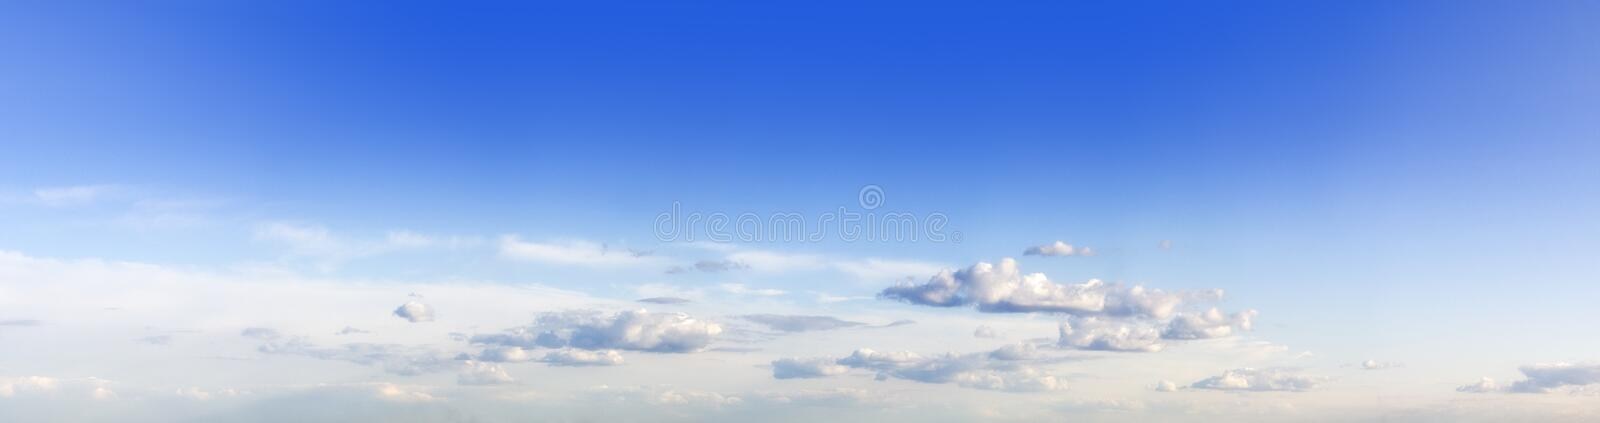 Download Blue cloudly sky stock image. Image of environment, clear - 2310035